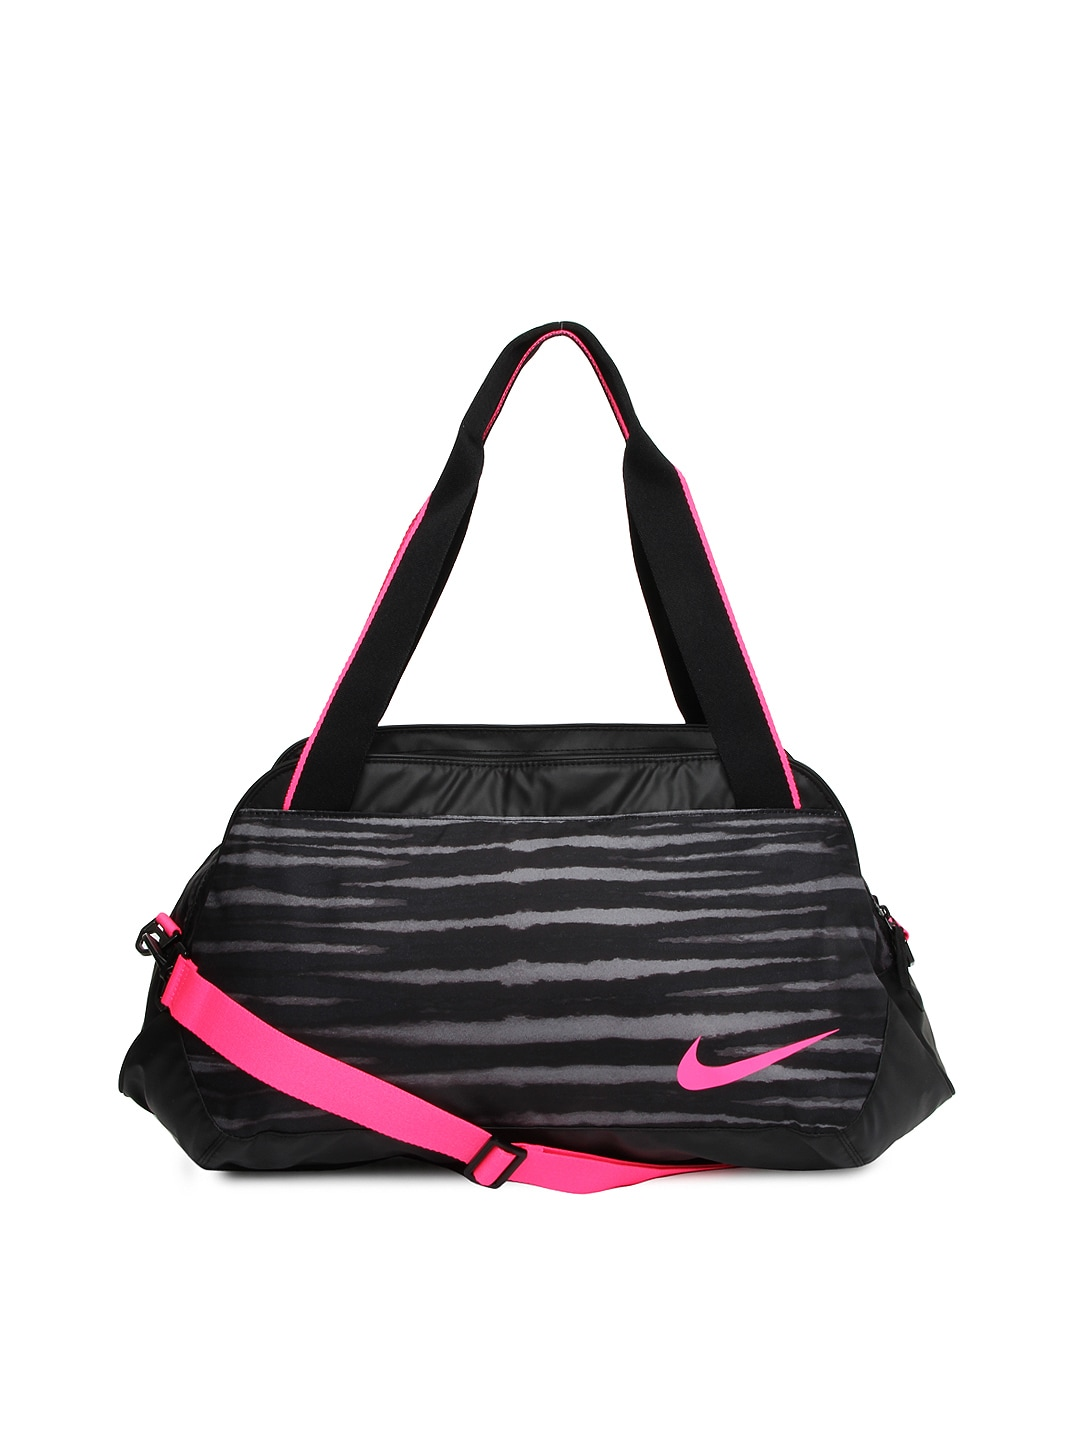 Original NIKE WOMEN39S Girls GYM CLUB TRAINING DUFFLE BAG BA5167010 PINK BLACK